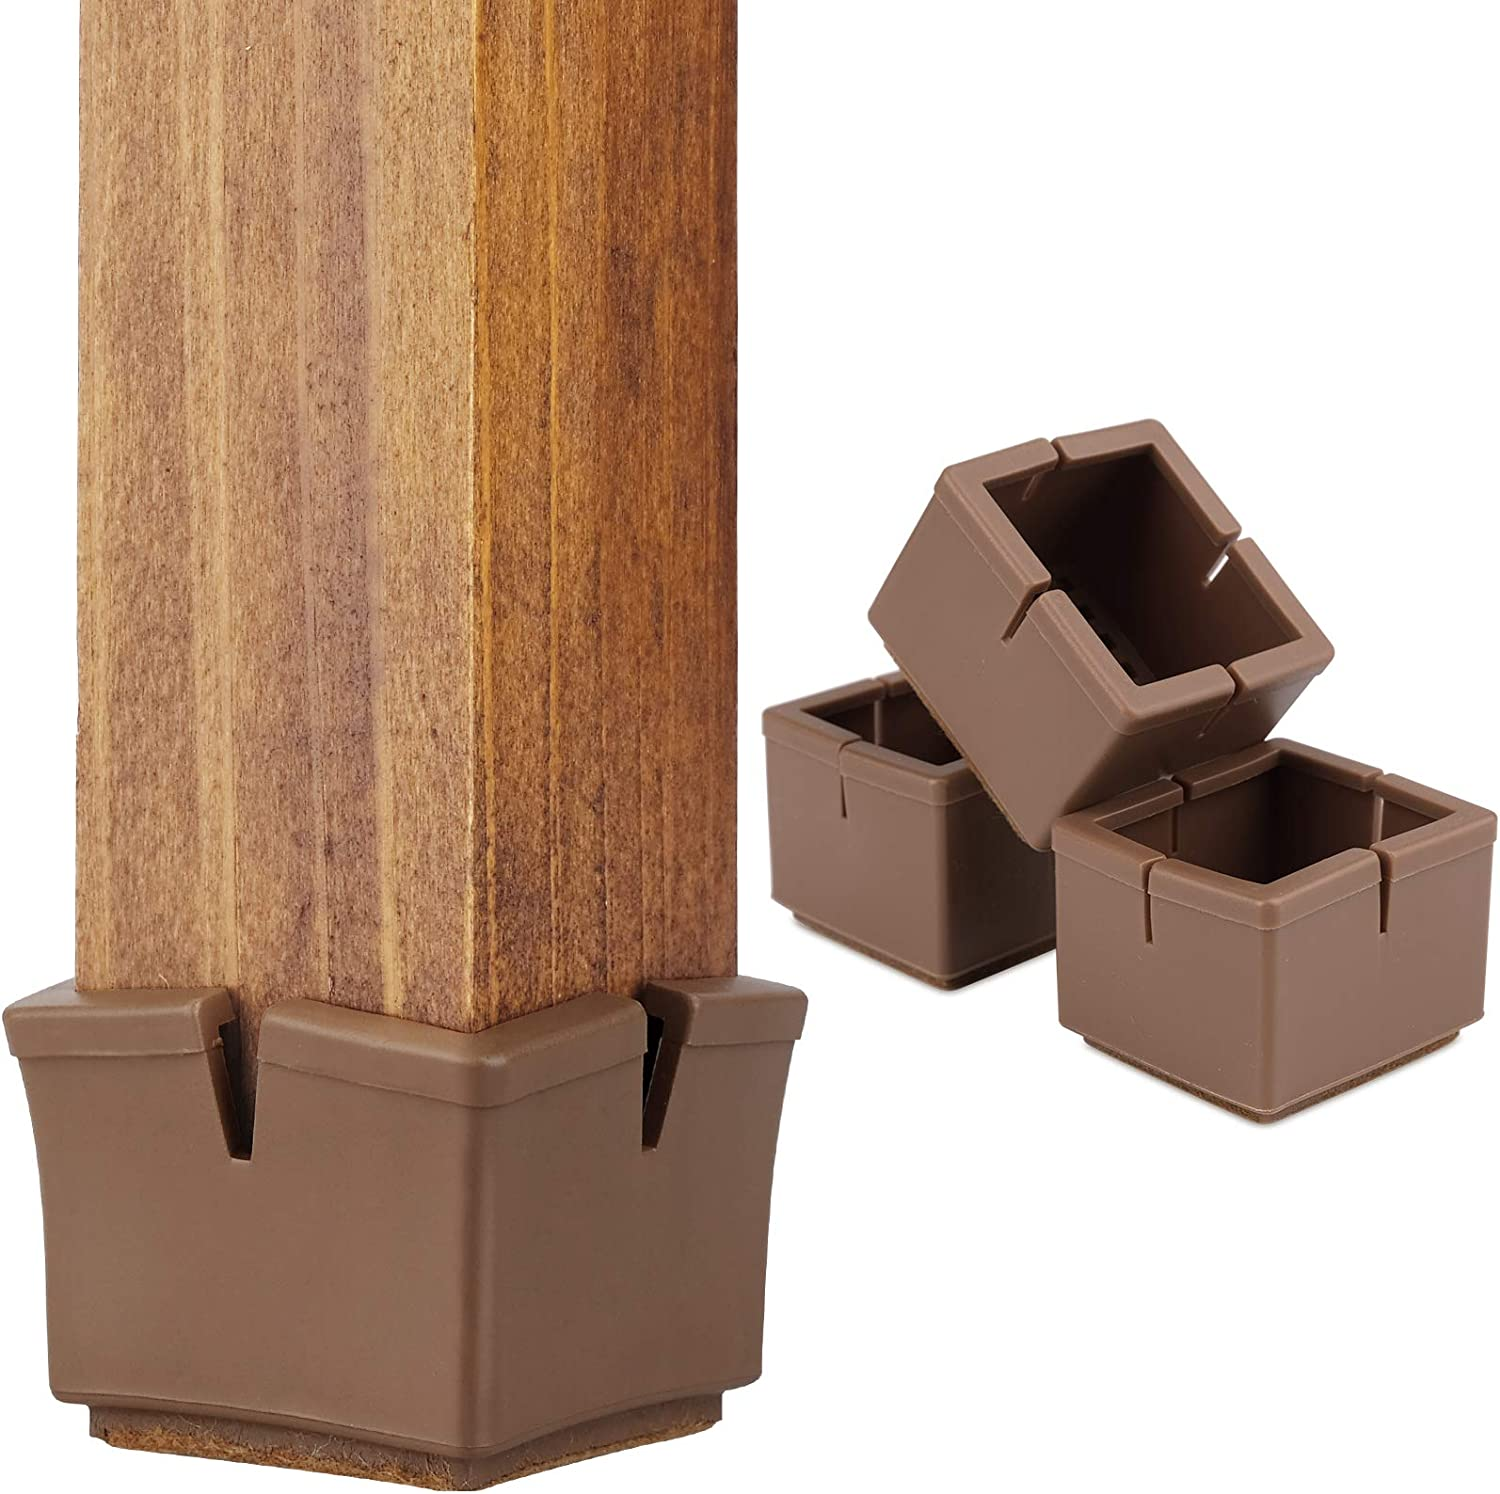 "Chair Leg Floor Protectors 1.5"" Chair Leg Caps 1-1/2 to 1-5/8 Inch Square Furniture Leg Caps Table Chair Feet Protectors with Felt Pads, Color Brown (16 Pack) (Fit 36mm-41mm)"